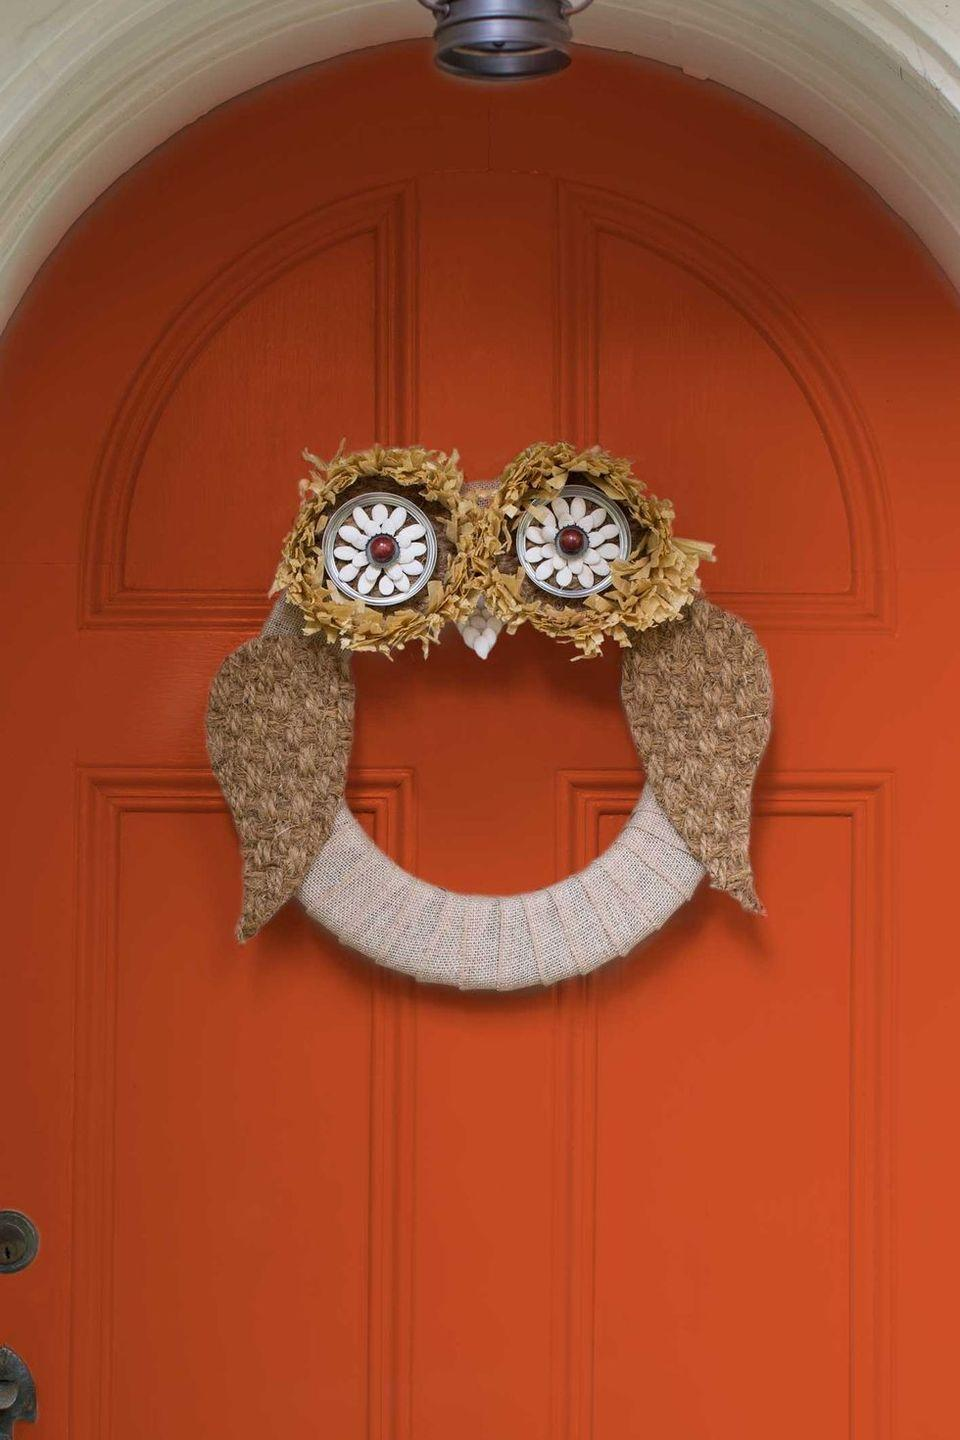 """<p>Fashion this owl wreath for an adorable fall entrance. Your neighbors will think it's a hoot! <strong><br></strong></p><p><strong>Make the wreath</strong>: Wrap <a href=""""https://www.amazon.com/Creative-Burlap-Fabric-Craft-Ribbon/dp/B0046UV3CO/?linkCode=ogi&tag=syn-yahoo-20&ascsubtag=%5Bartid%7C10050.g.2610%5Bsrc%7Cyahoo-us"""" rel=""""nofollow noopener"""" target=""""_blank"""" data-ylk=""""slk:burlap ribbon"""" class=""""link rapid-noclick-resp"""">burlap ribbon</a> around a <a href=""""https://www.amazon.com/Floracraft-FLOXT12WU-Styrofoam-Extruded-Wreath/dp/B002V3ENOS/?linkCode=ogi&tag=syn-yahoo-20&ascsubtag=%5Bartid%7C10050.g.2610%5Bsrc%7Cyahoo-us"""" rel=""""nofollow noopener"""" target=""""_blank"""" data-ylk=""""slk:12&quot; Styrofoam form"""" class=""""link rapid-noclick-resp"""">12"""" Styrofoam form</a>. For the eyes, use utility scissors to cut a 5"""" circle from a <a href=""""https://www.amazon.com/Kempf-Natural-Coco-Doormat-1-Inch/dp/B004EBHSI8?linkCode=ogi&tag=syn-yahoo-20&ascsubtag=%5Bartid%7C10050.g.2610%5Bsrc%7Cyahoo-us"""" rel=""""nofollow noopener"""" target=""""_blank"""" data-ylk=""""slk:sisal doormat"""" class=""""link rapid-noclick-resp"""">sisal doormat</a>. Trim a 2"""" strip from the edge of a <a href=""""https://www.amazon.com/Raffia-Table-Skirting-Party-Decoration/dp/B000RHLLS6?linkCode=ogi&tag=syn-yahoo-20&ascsubtag=%5Bartid%7C10050.g.2610%5Bsrc%7Cyahoo-us"""" rel=""""nofollow noopener"""" target=""""_blank"""" data-ylk=""""slk:raffia table skirt"""" class=""""link rapid-noclick-resp"""">raffia table skirt</a> and hot-glue along the outer edge.Next, hot-glue the outer ring of a 41/2""""-inch <a href=""""https://www.amazon.com/KooK-Mason-Regular-Secure-Silver/dp/B079F511CS/?linkCode=ogi&tag=syn-yahoo-20&ascsubtag=%5Bartid%7C10050.g.2610%5Bsrc%7Cyahoo-us"""" rel=""""nofollow noopener"""" target=""""_blank"""" data-ylk=""""slk:Mason jar lid"""" class=""""link rapid-noclick-resp"""">Mason jar lid</a> inside the raffia, securing it to the sisal circle. Hot-glue a metal bottle cap at the center of the ring and encircle with dried pumpkin seeds. Hot-glue a <a href=""""https://www.amazon.com/Assorted-"""